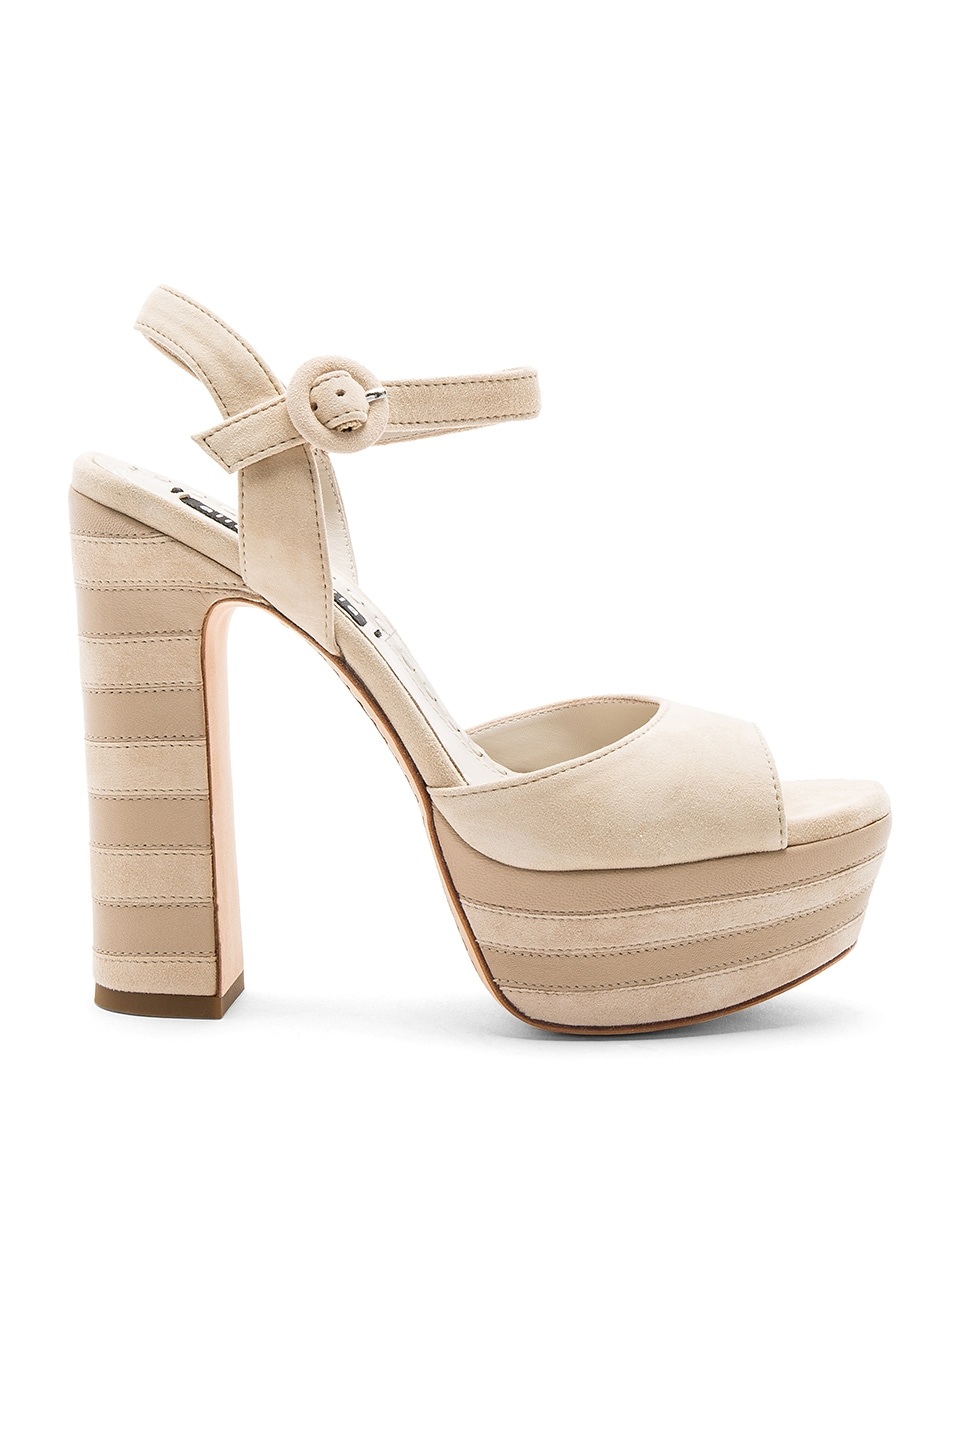 Alice + Olivia Liberty Platform in Light Tan